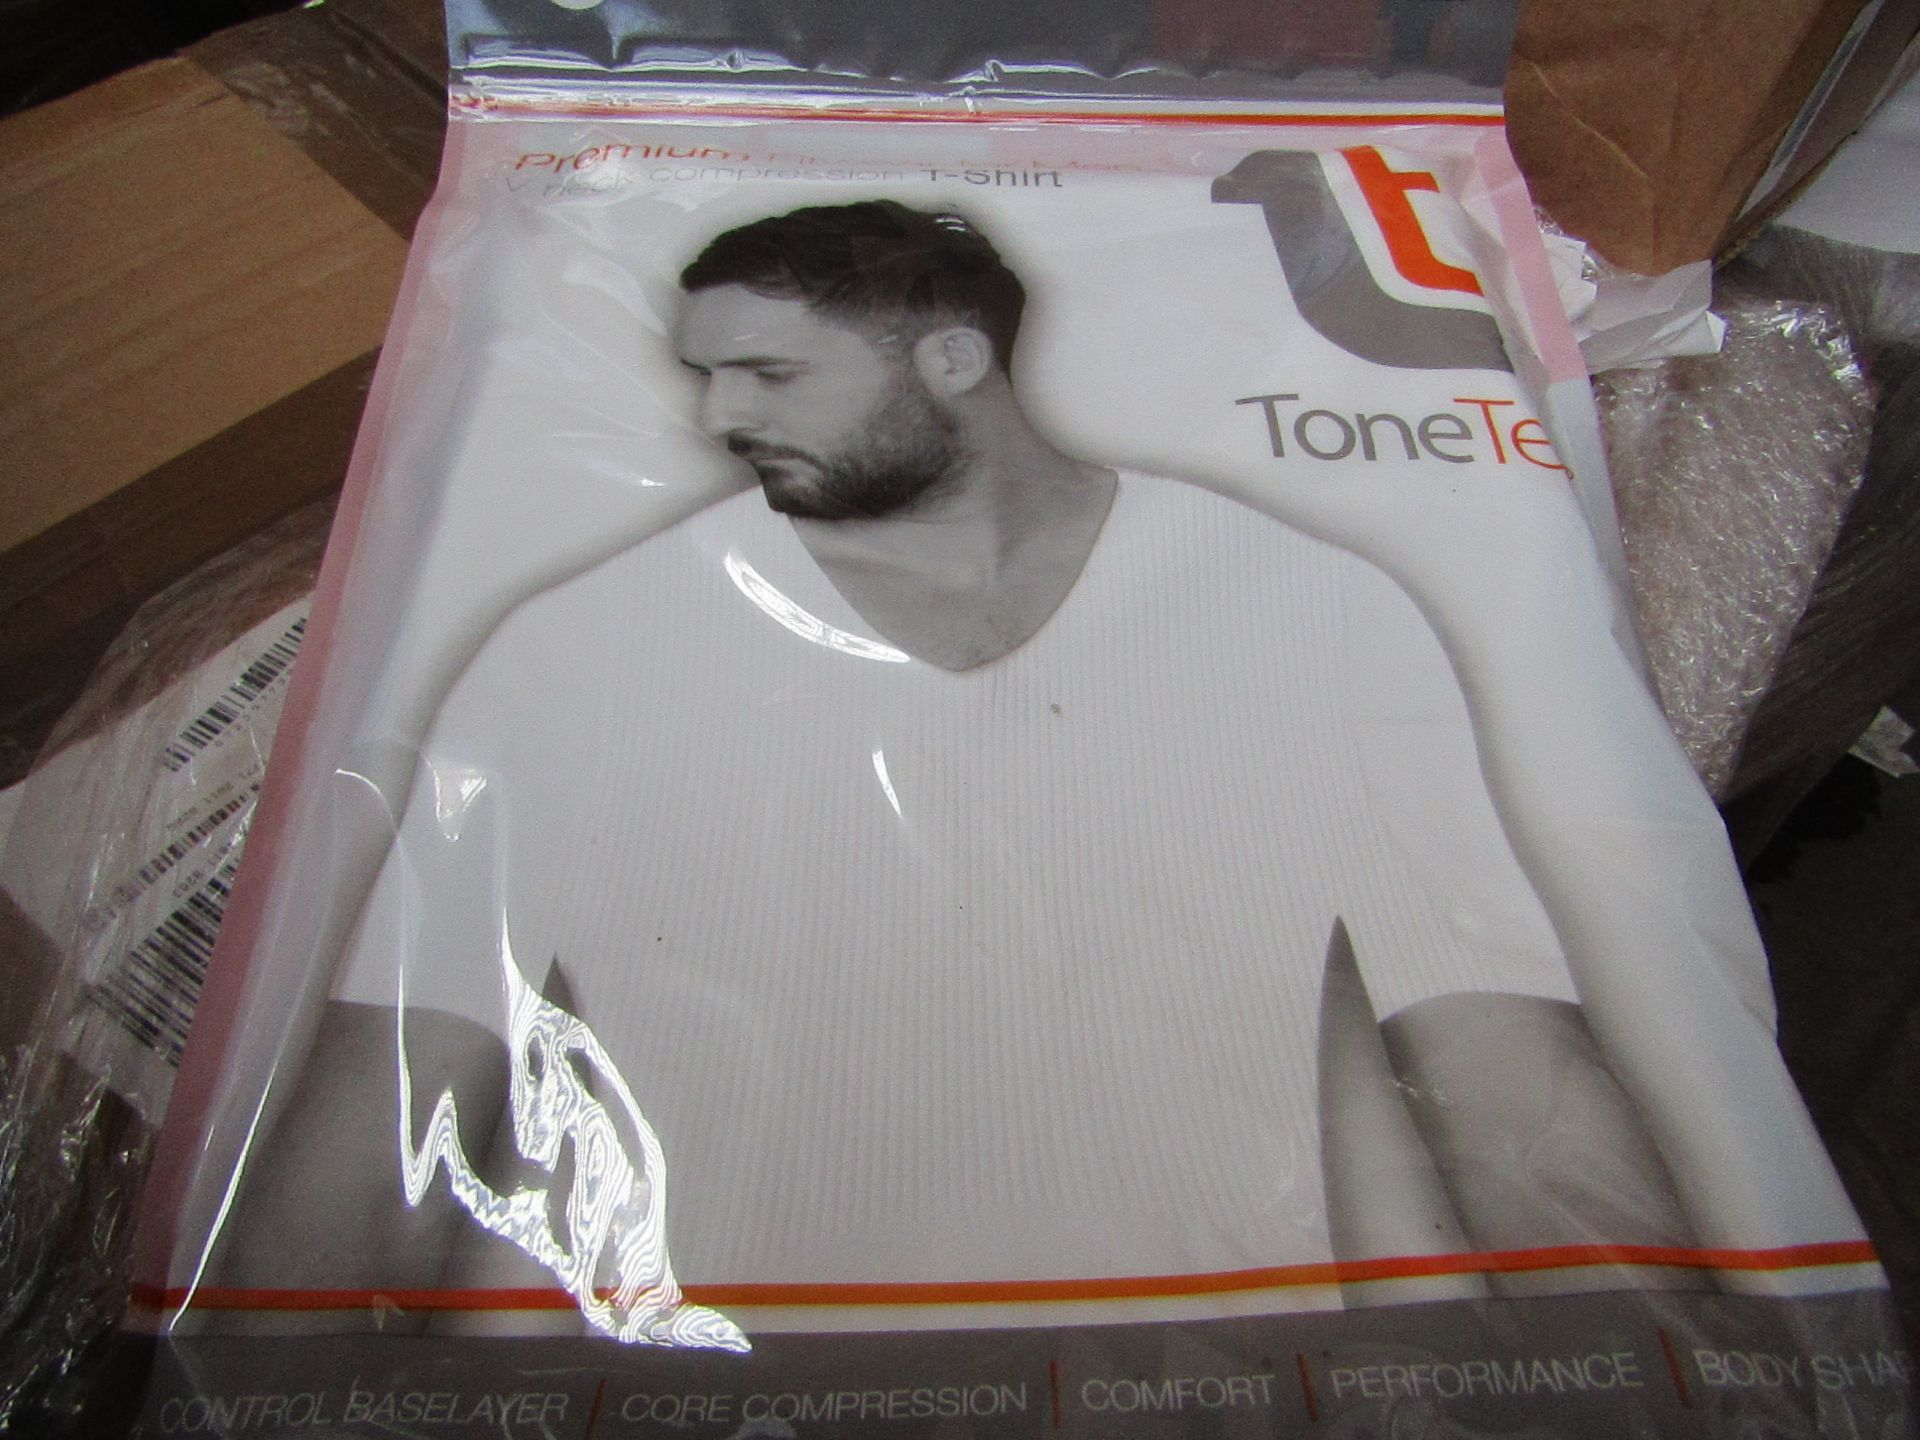   48x   TONE TEE V NECK COMPRESSION T-SHIRT WHITE XL   PACKAGED & BOXED   SKU 1508038582739   RRP £